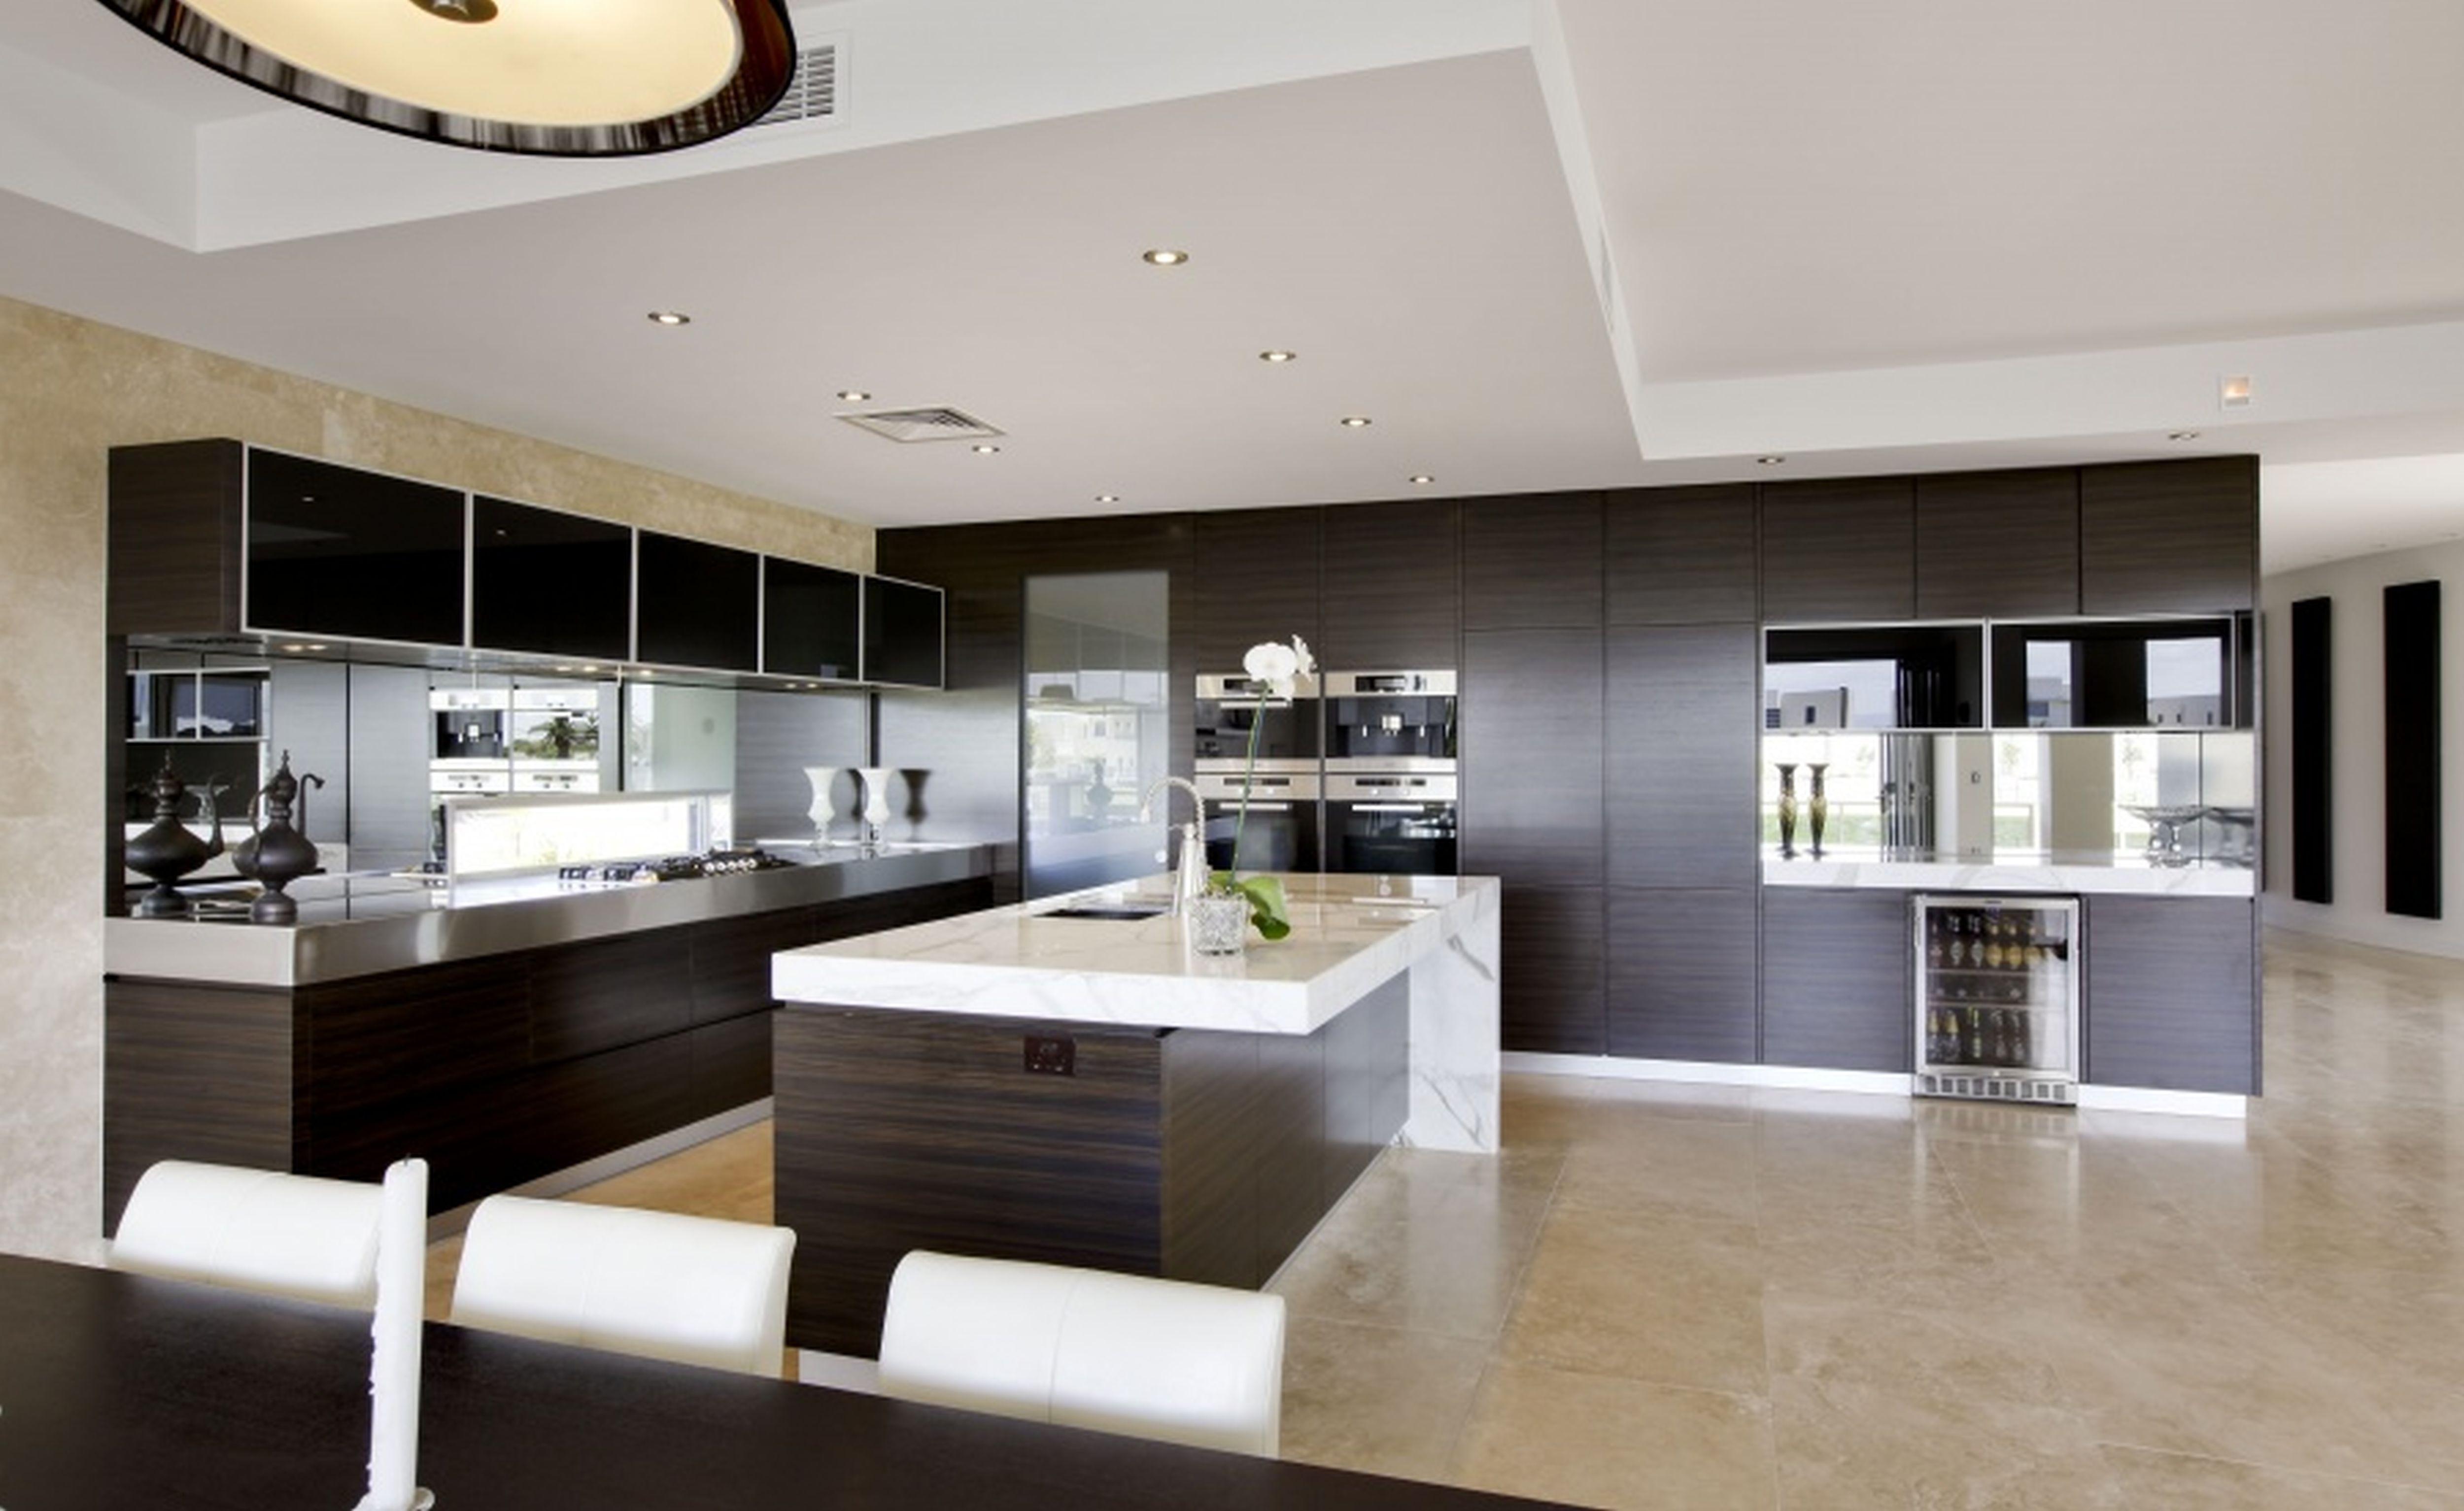 Modern mad home interior design ideas beautiful kitchen Modern kitchen design ideas